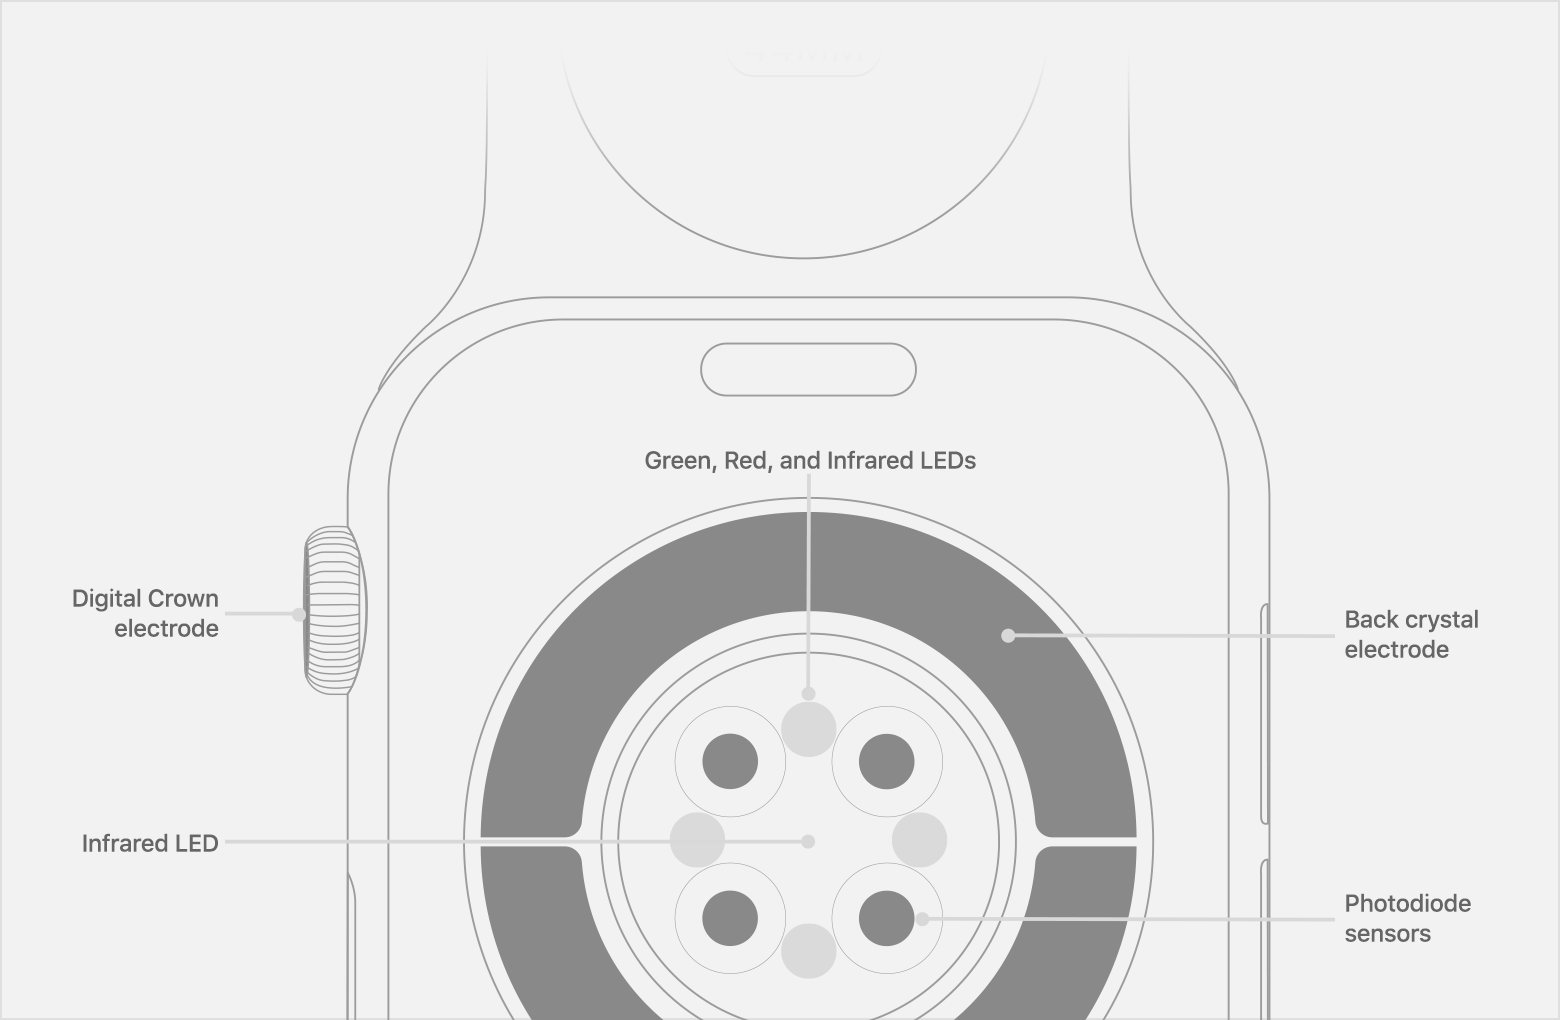 Location of Photodiode sensors, Infrared LEDs, and Green LEDs on Apple Watch Series 6.